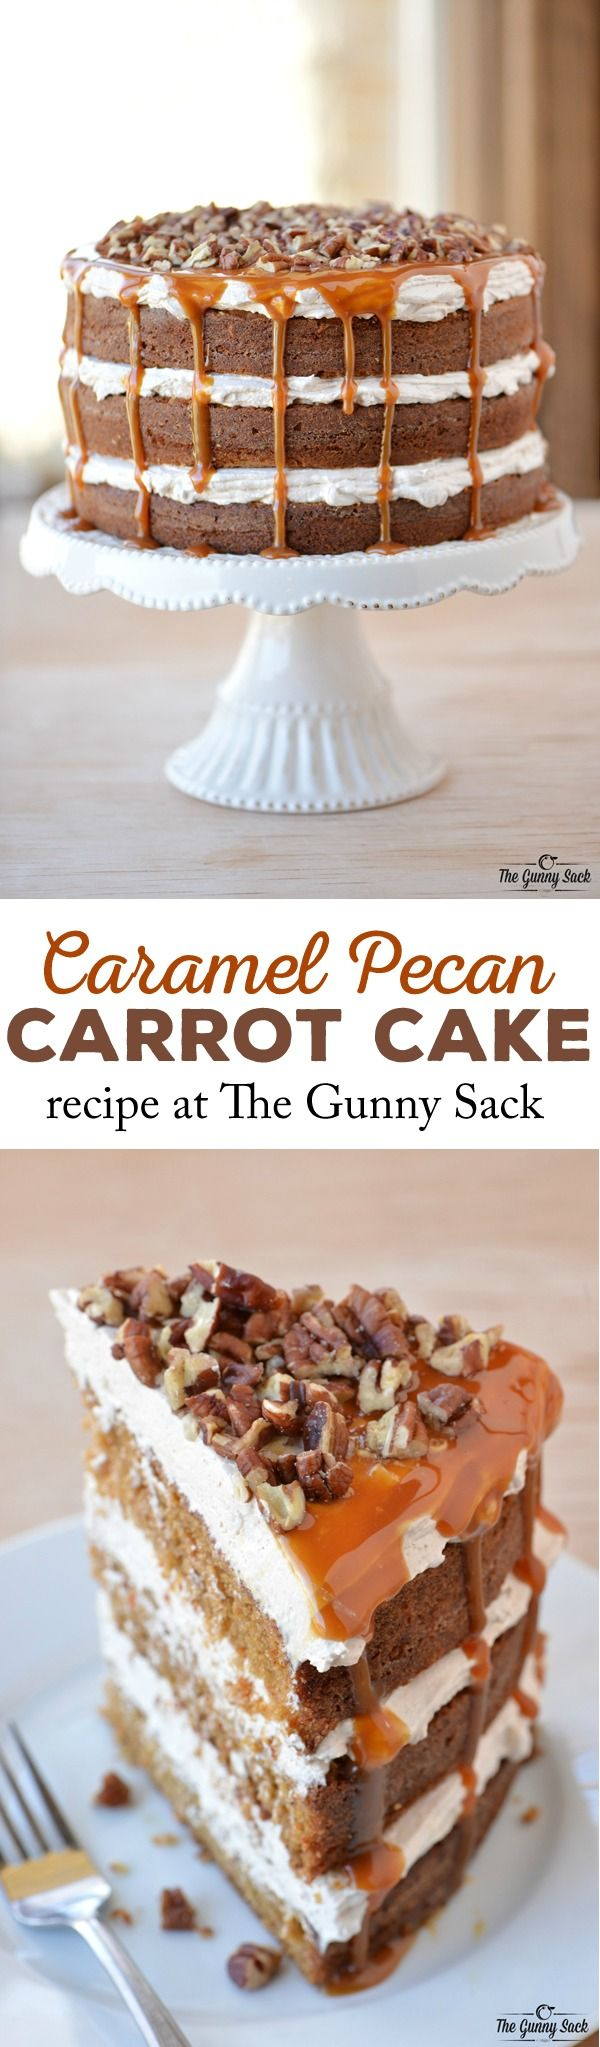 Everyone will love this epic Caramel Pecan Carrot Cake recipe with layers of fluffy filling, caramel drizzling down the sides and chopped pecans on top. #AppleButterSpin #client